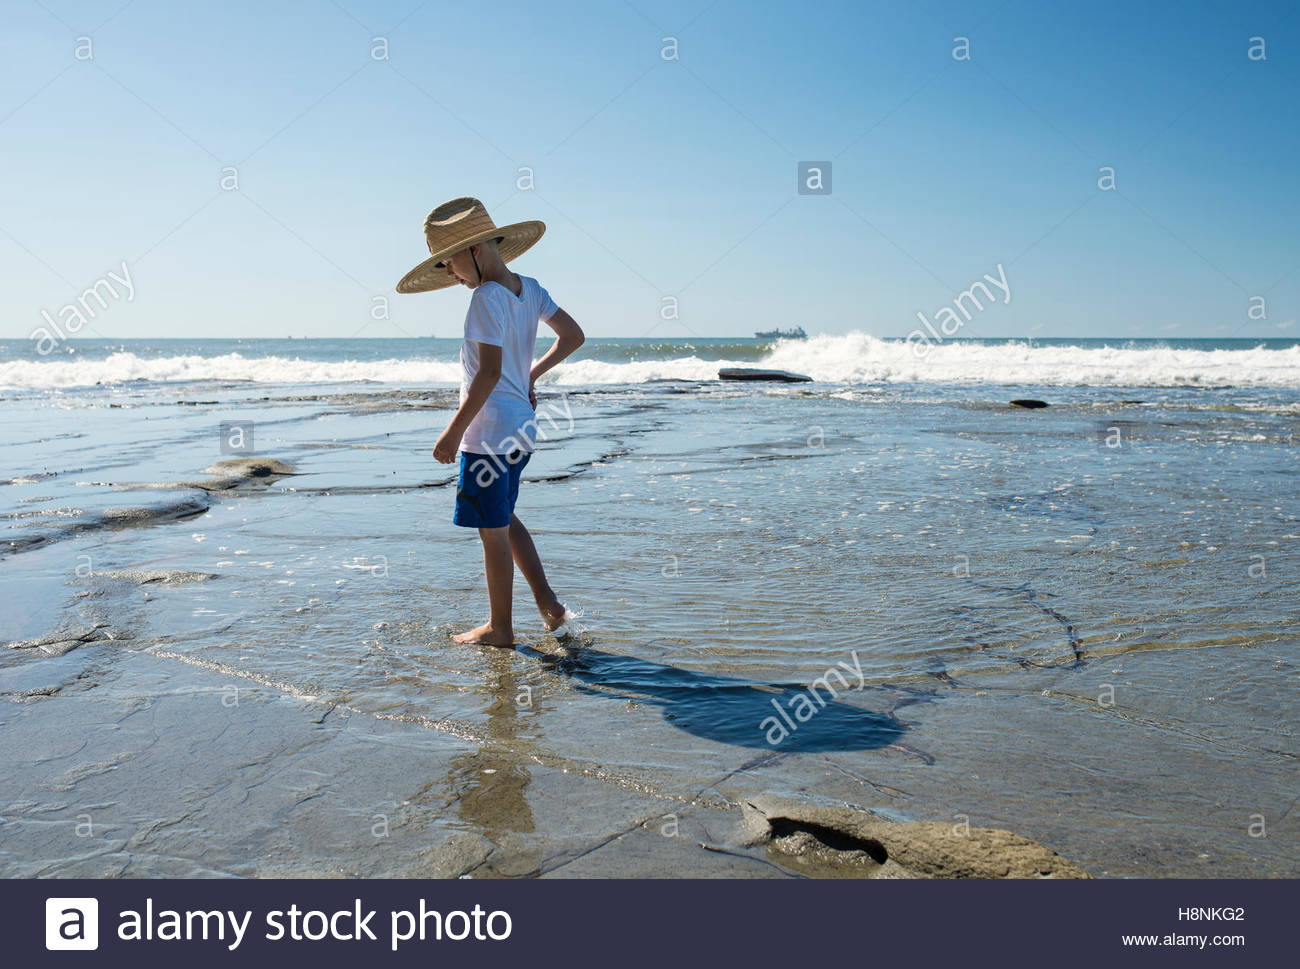 Boy (6-7) in straw hat standing in water on beach - Stock Image